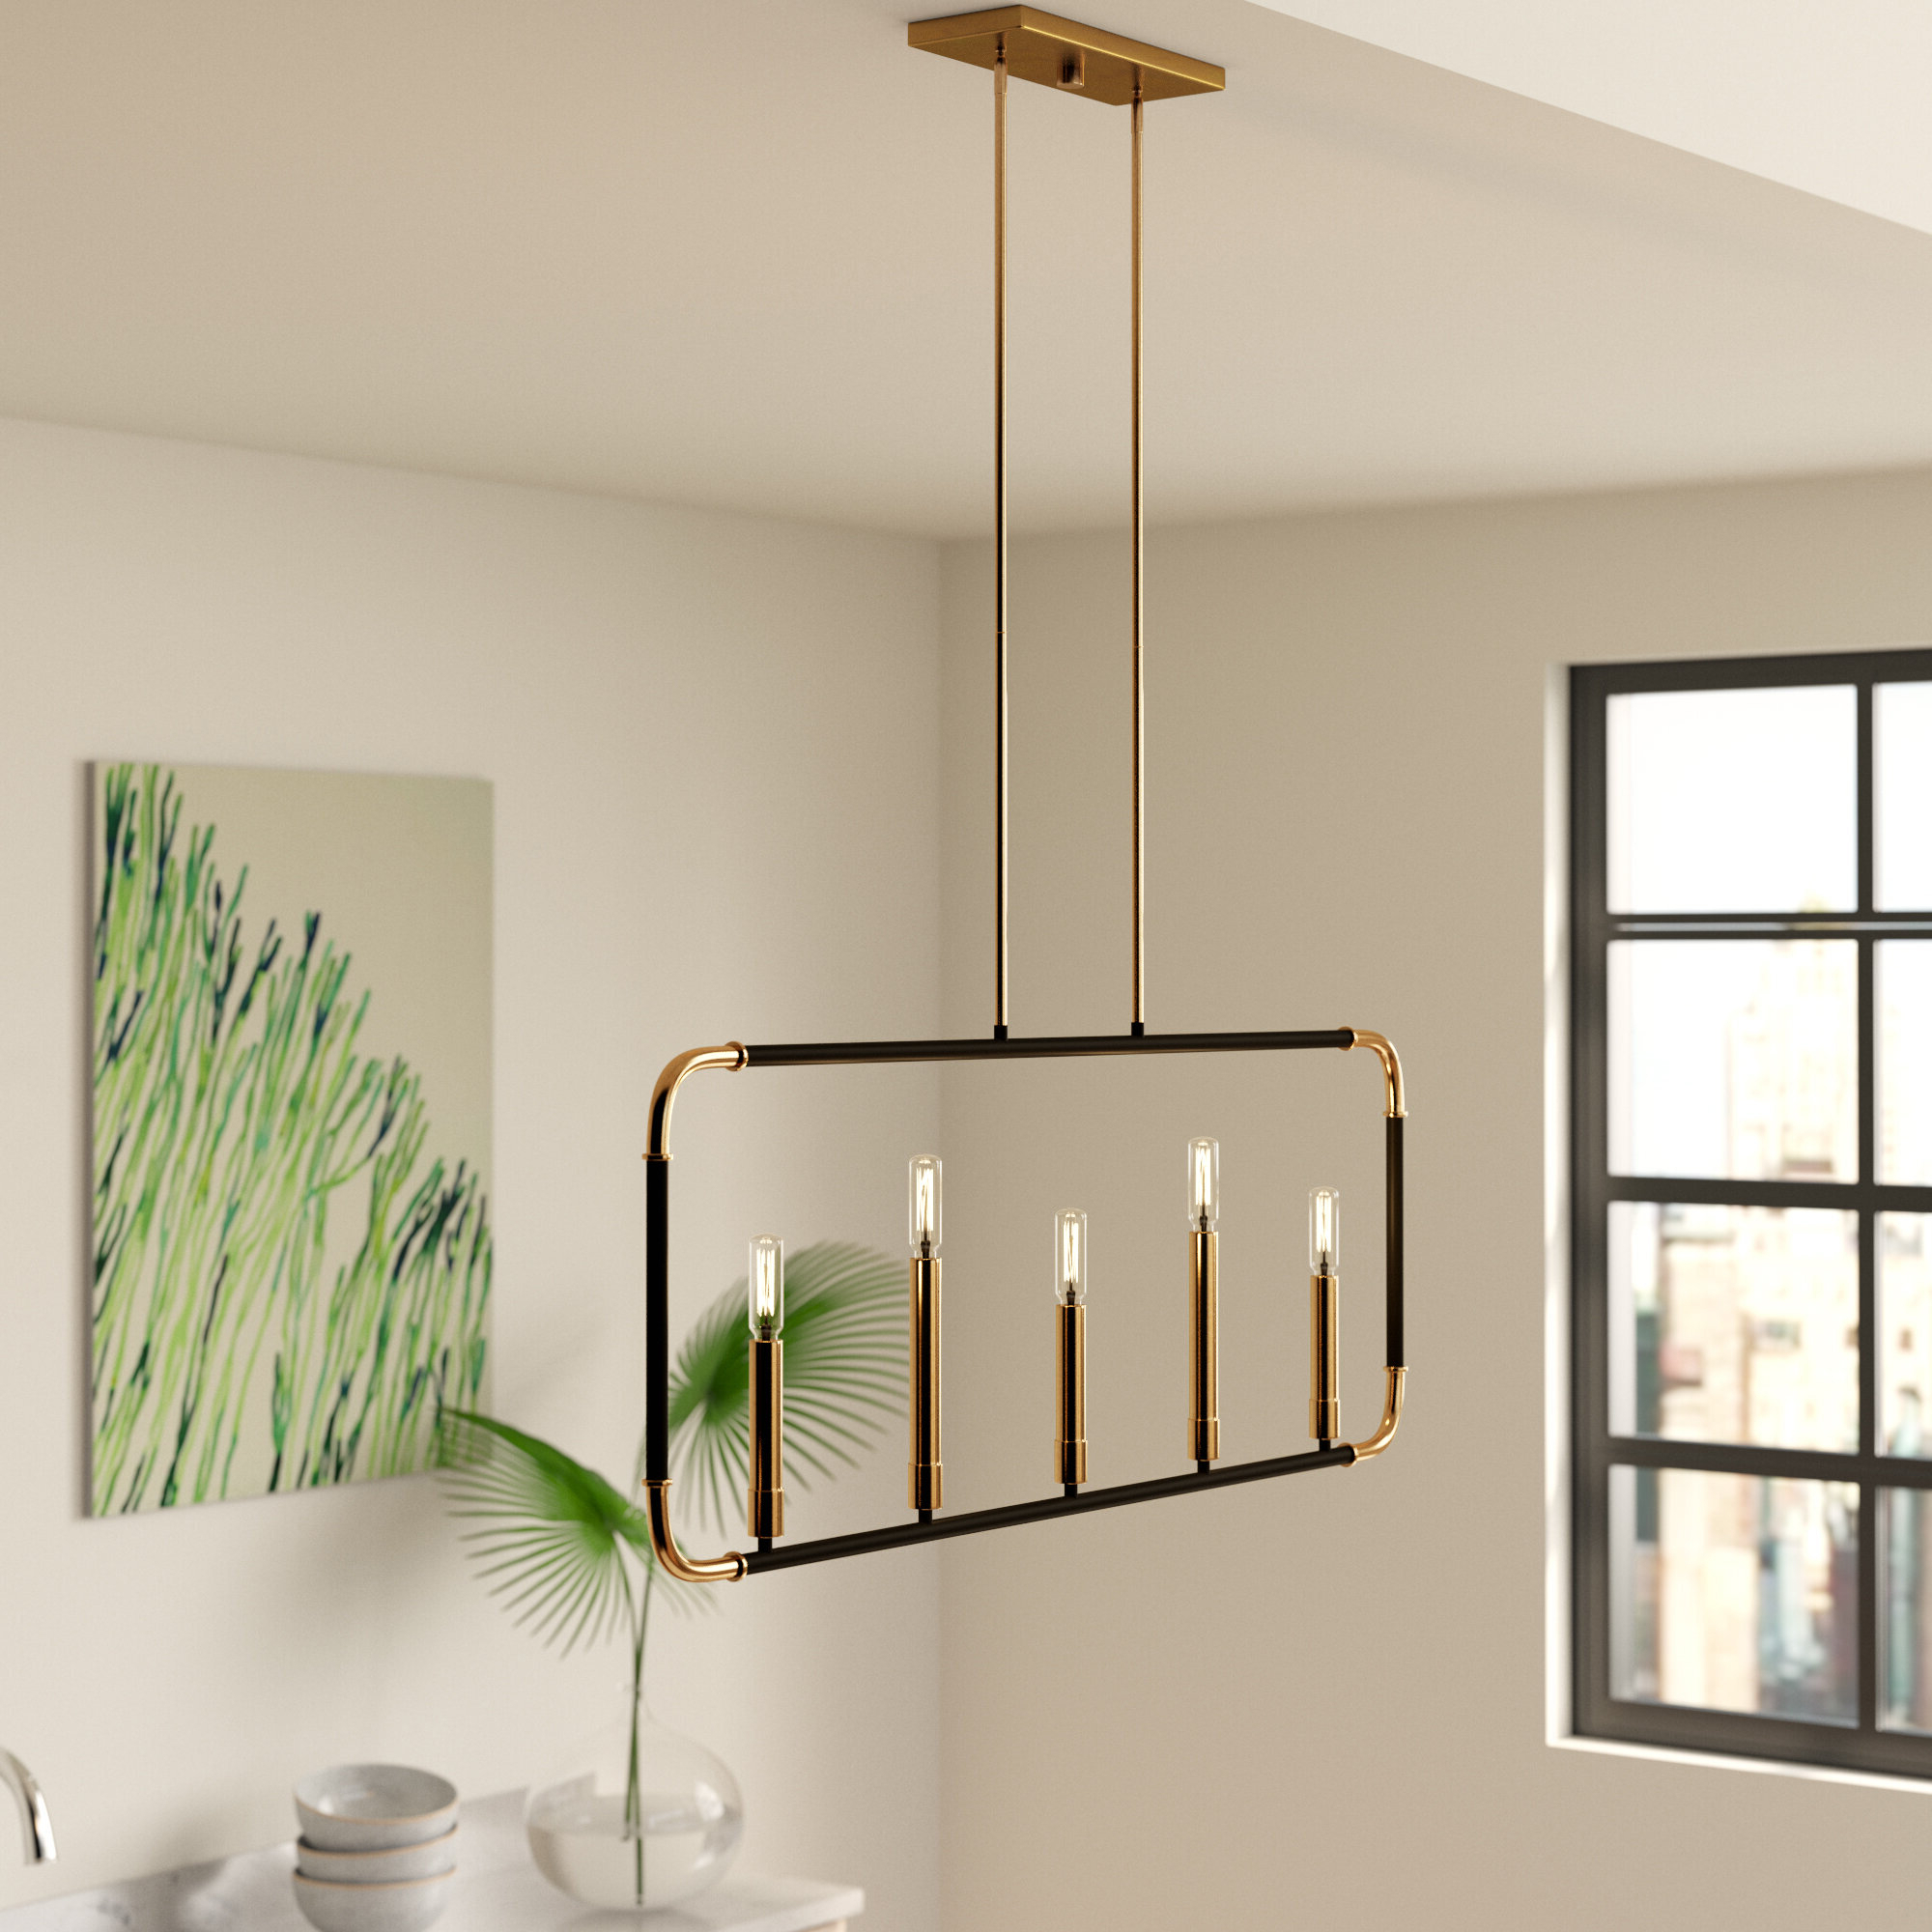 Preferred Freemont 5 Light Kitchen Island Linear Chandeliers Pertaining To Jairo 5 Light Kitchen Island Pendant (Gallery 10 of 20)